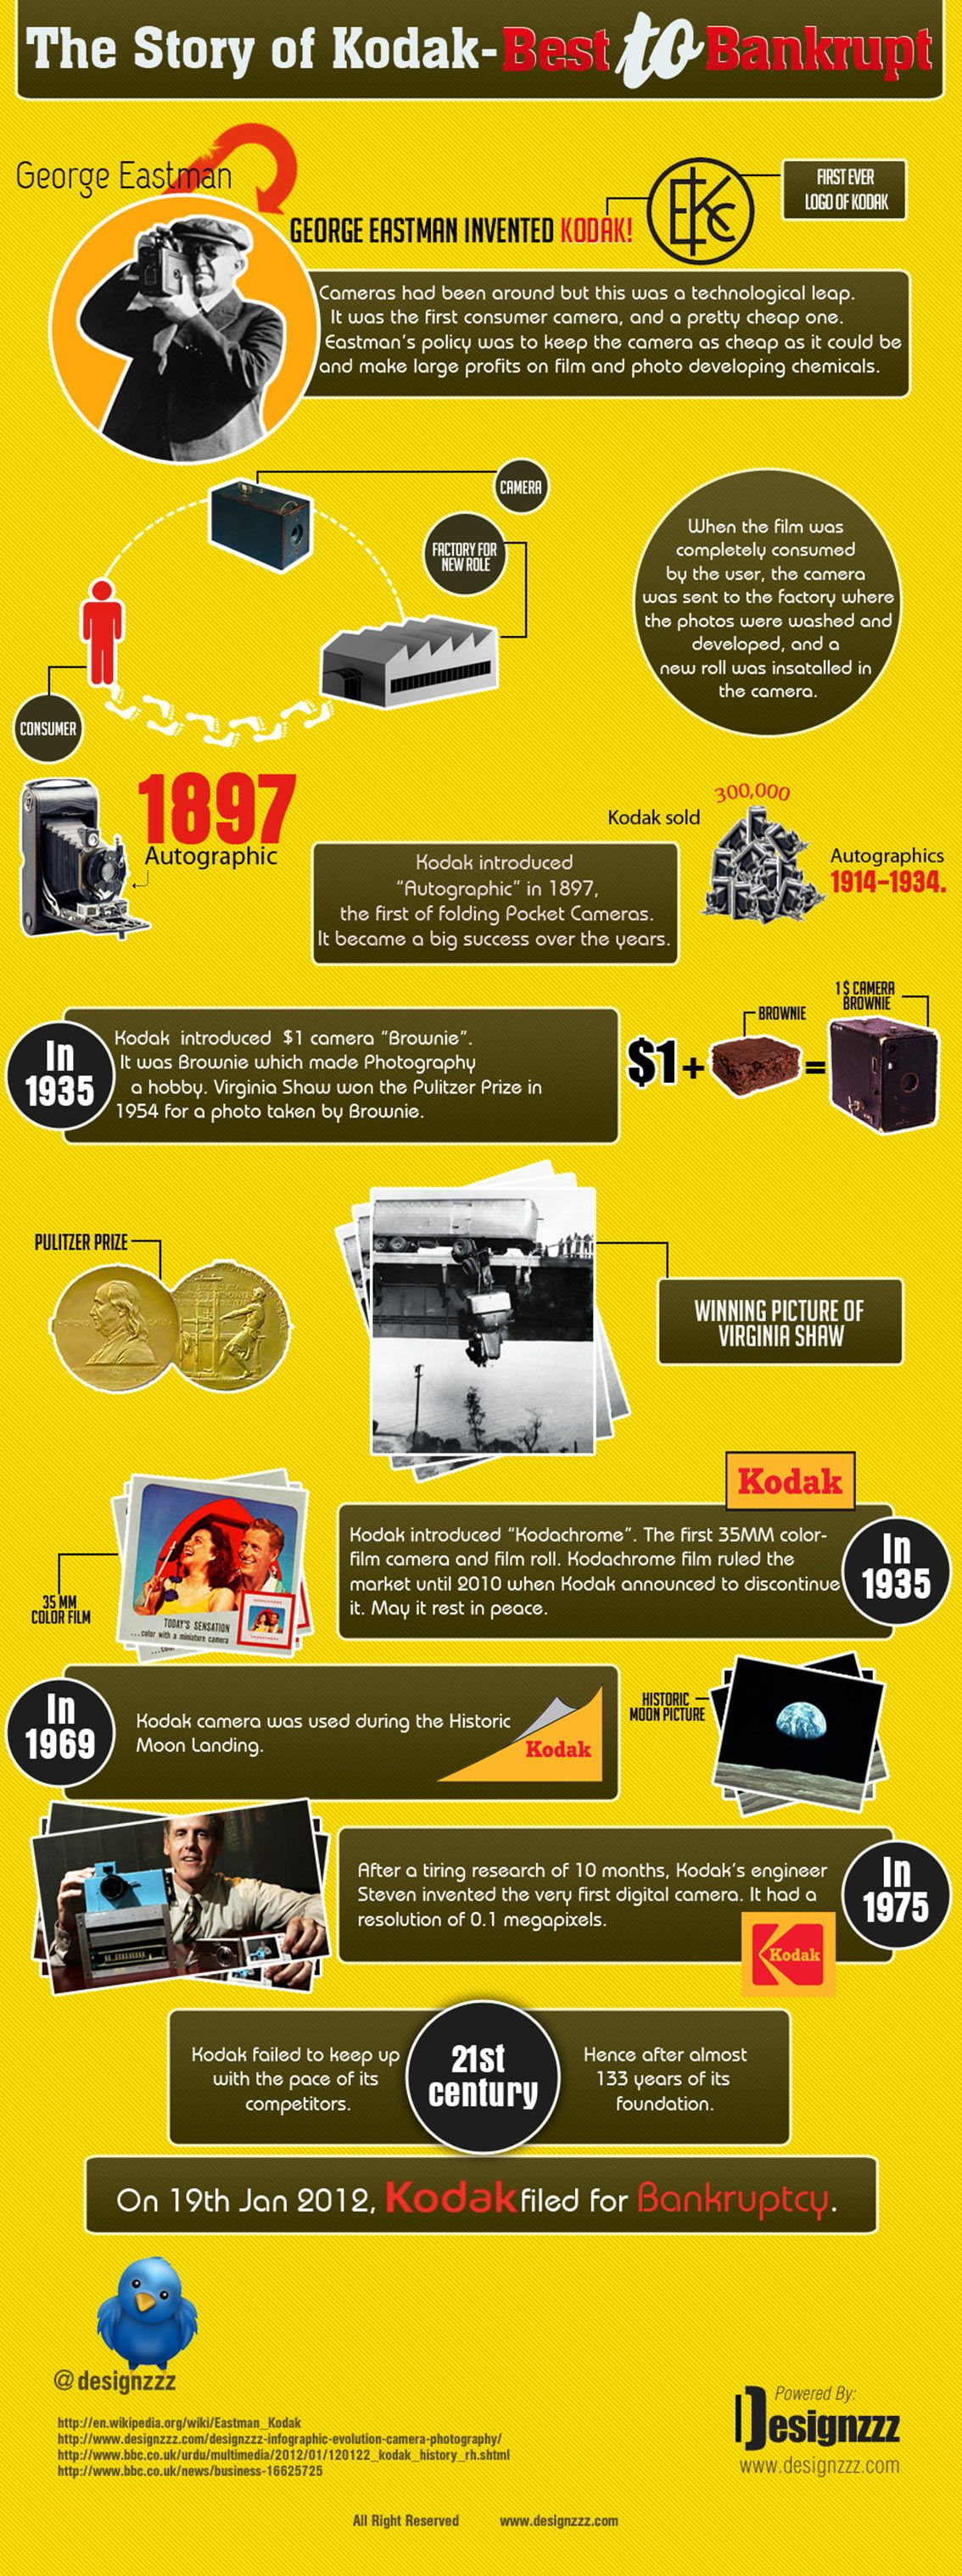 The Story of Kodak – From Best to Bankrupt [Infographic